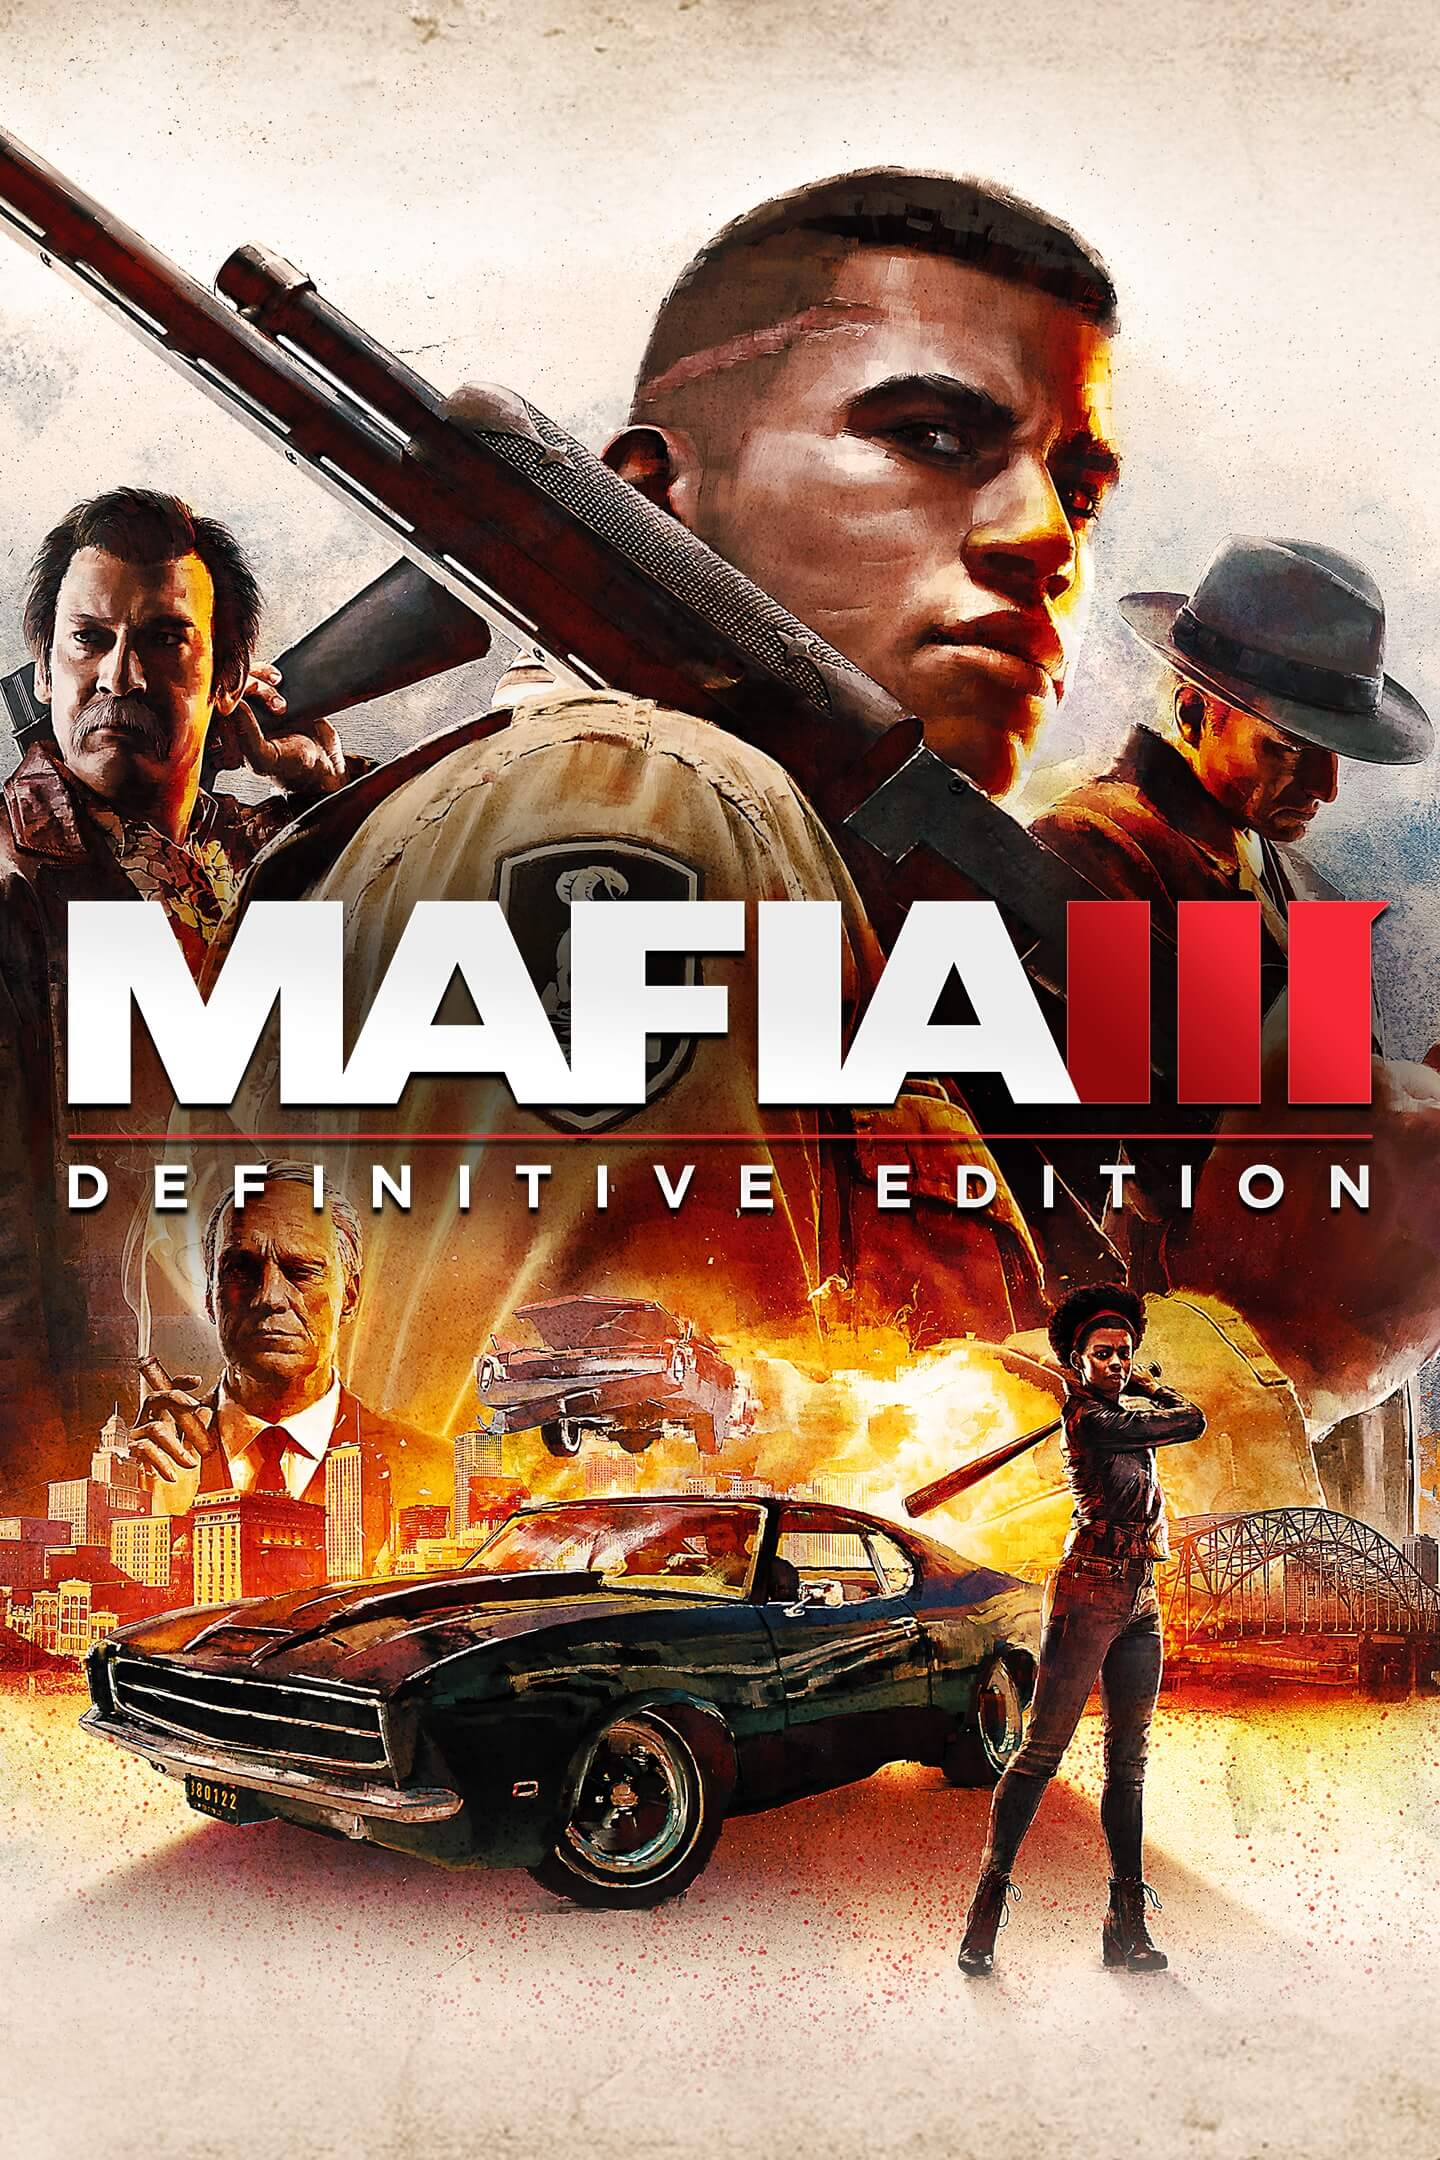 https://img5.downloadha.com/hosein/files/2020/05/Mafia-III-Definitive-Edition-pc-cover-large.jpg